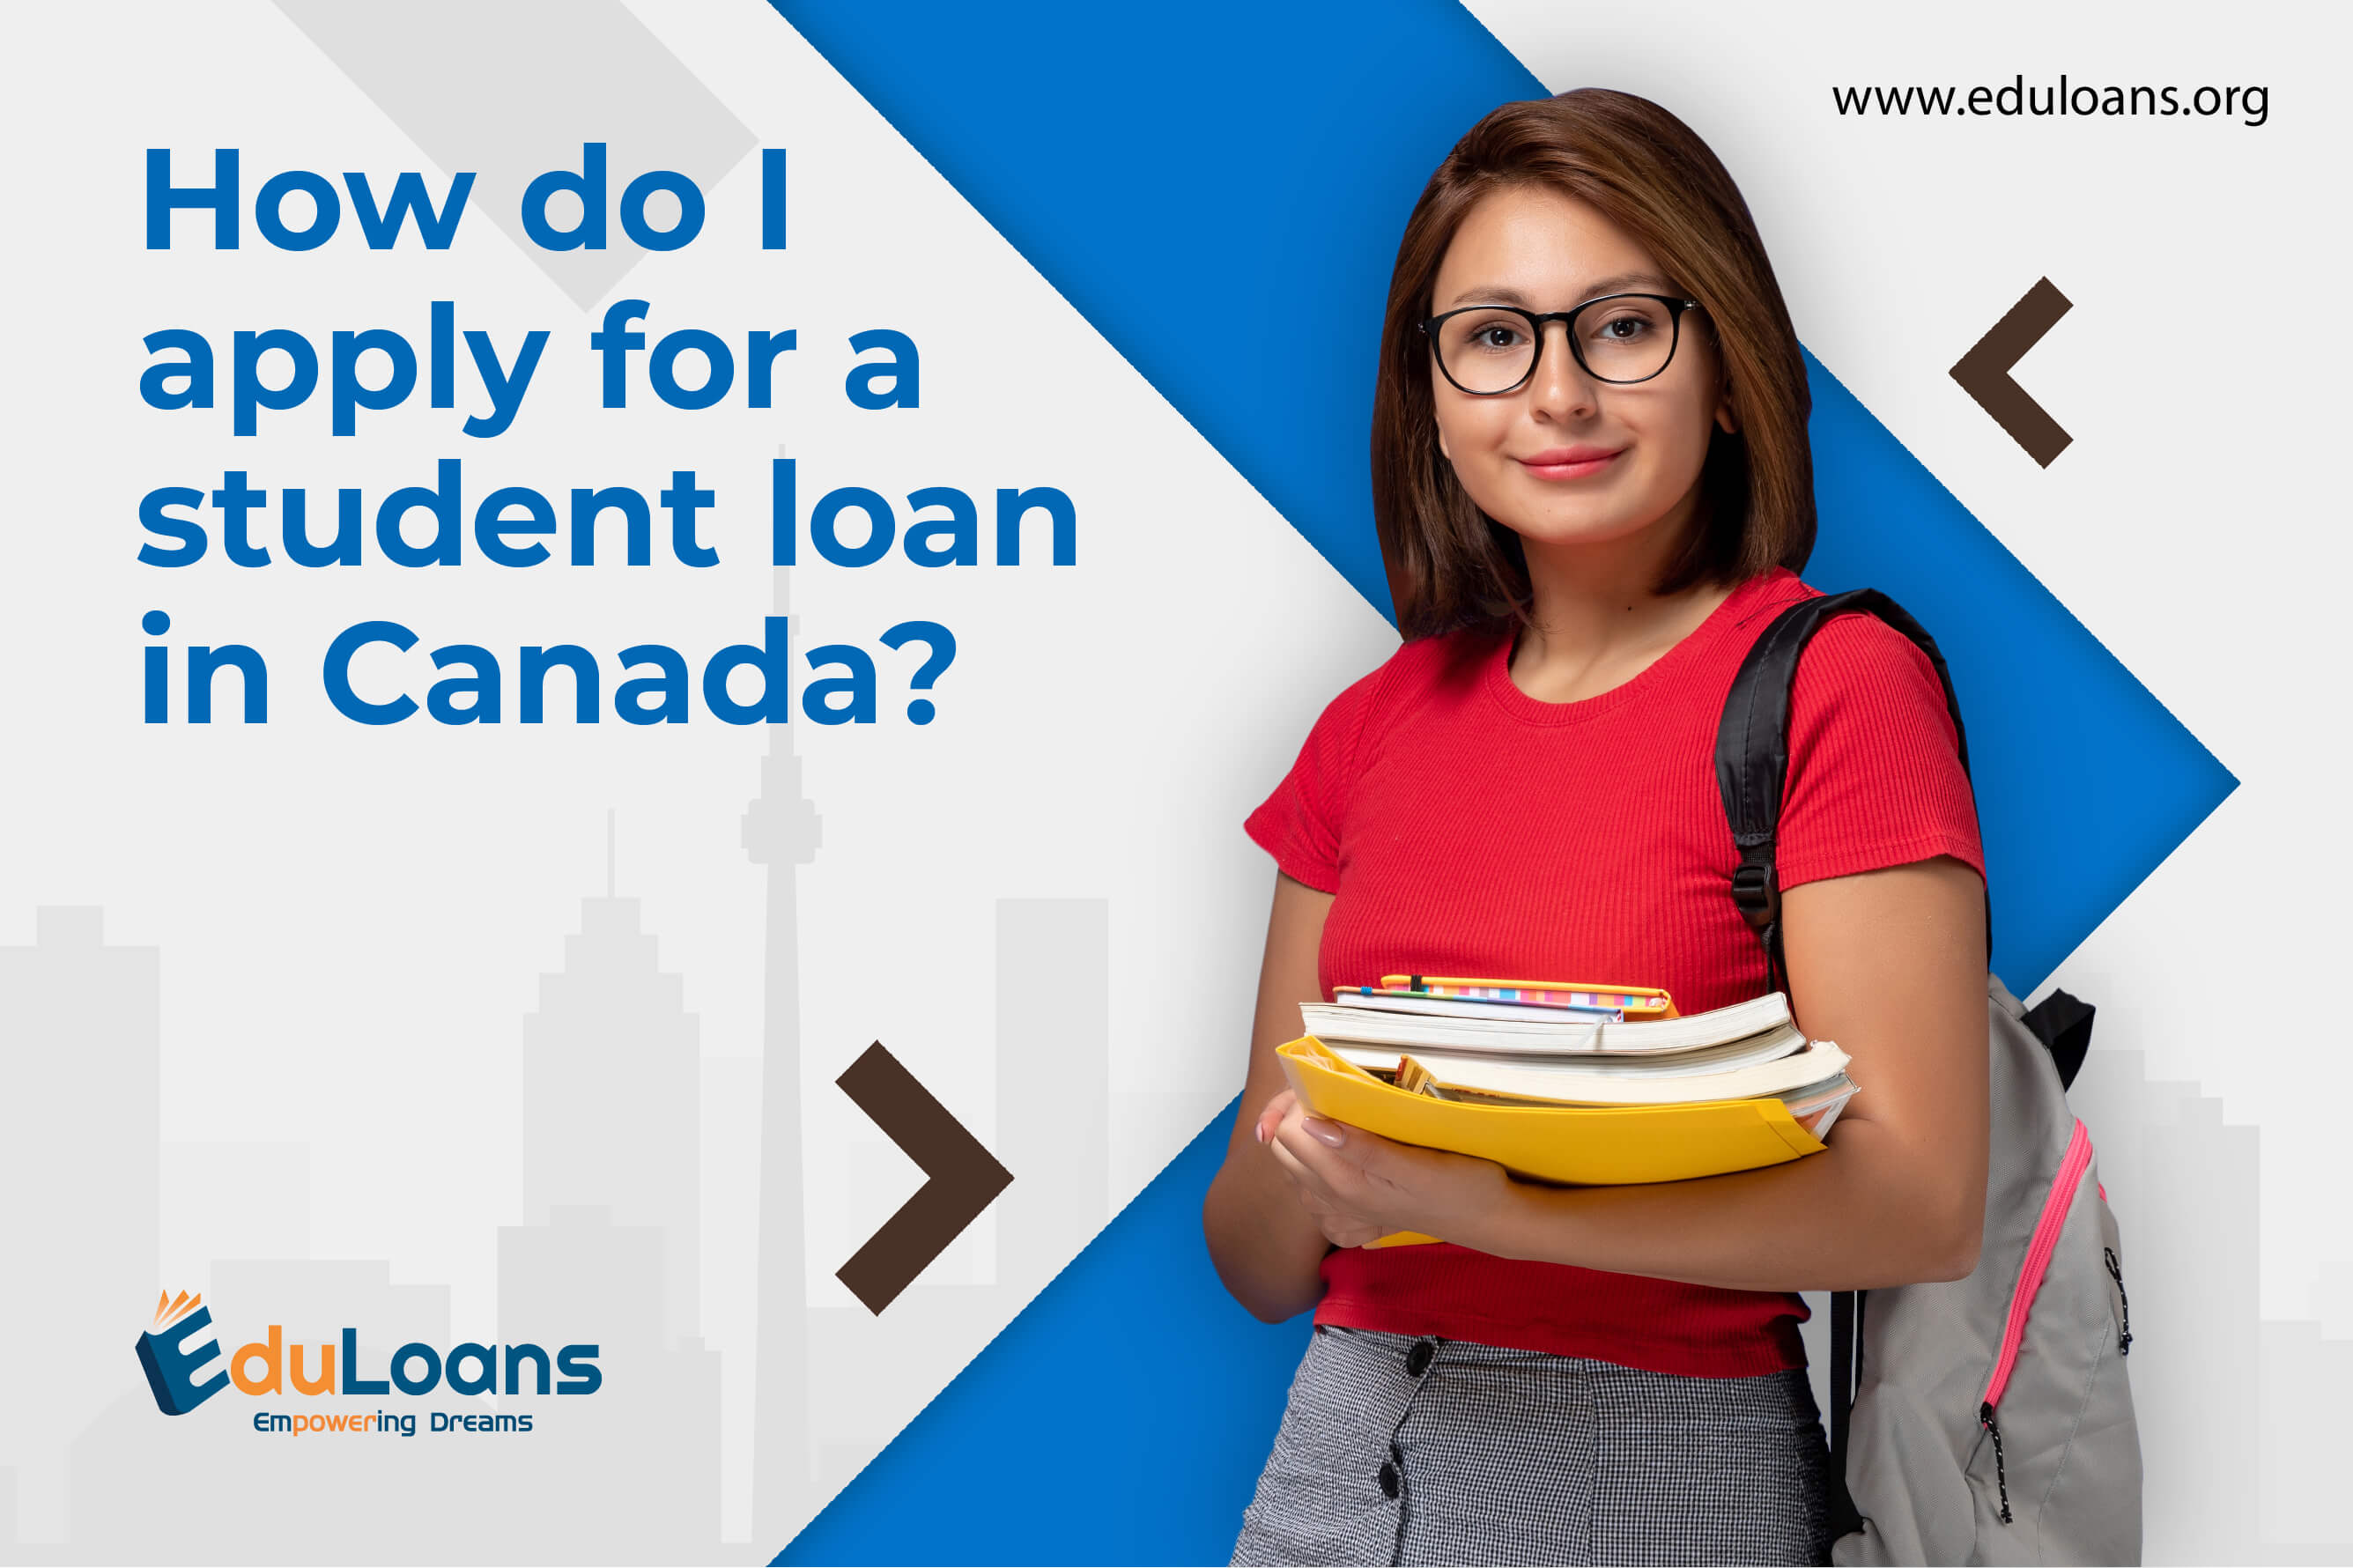 How do I apply for a student loan in Canada?